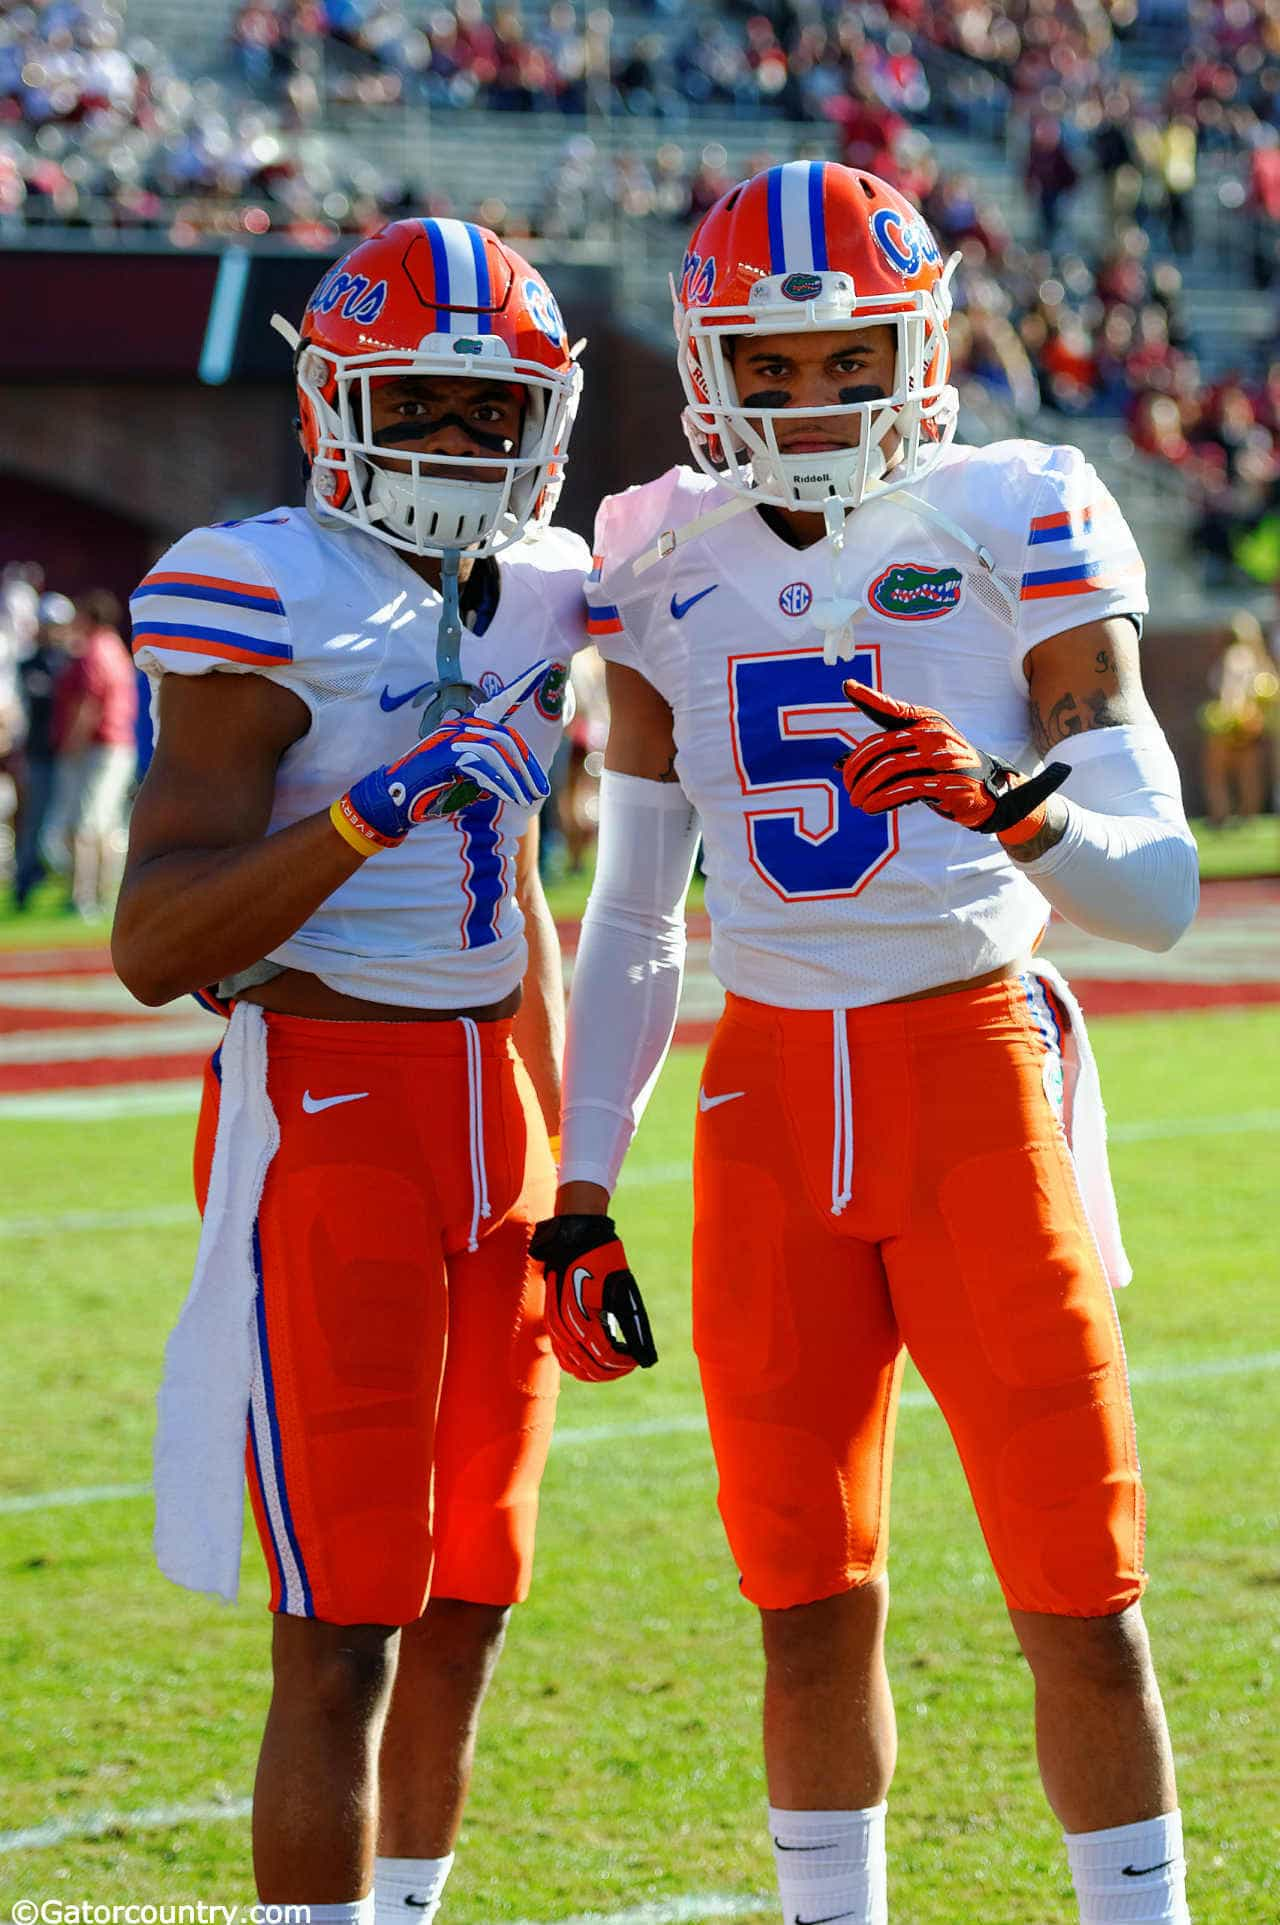 Collins wants Florida Gators to find their own swag